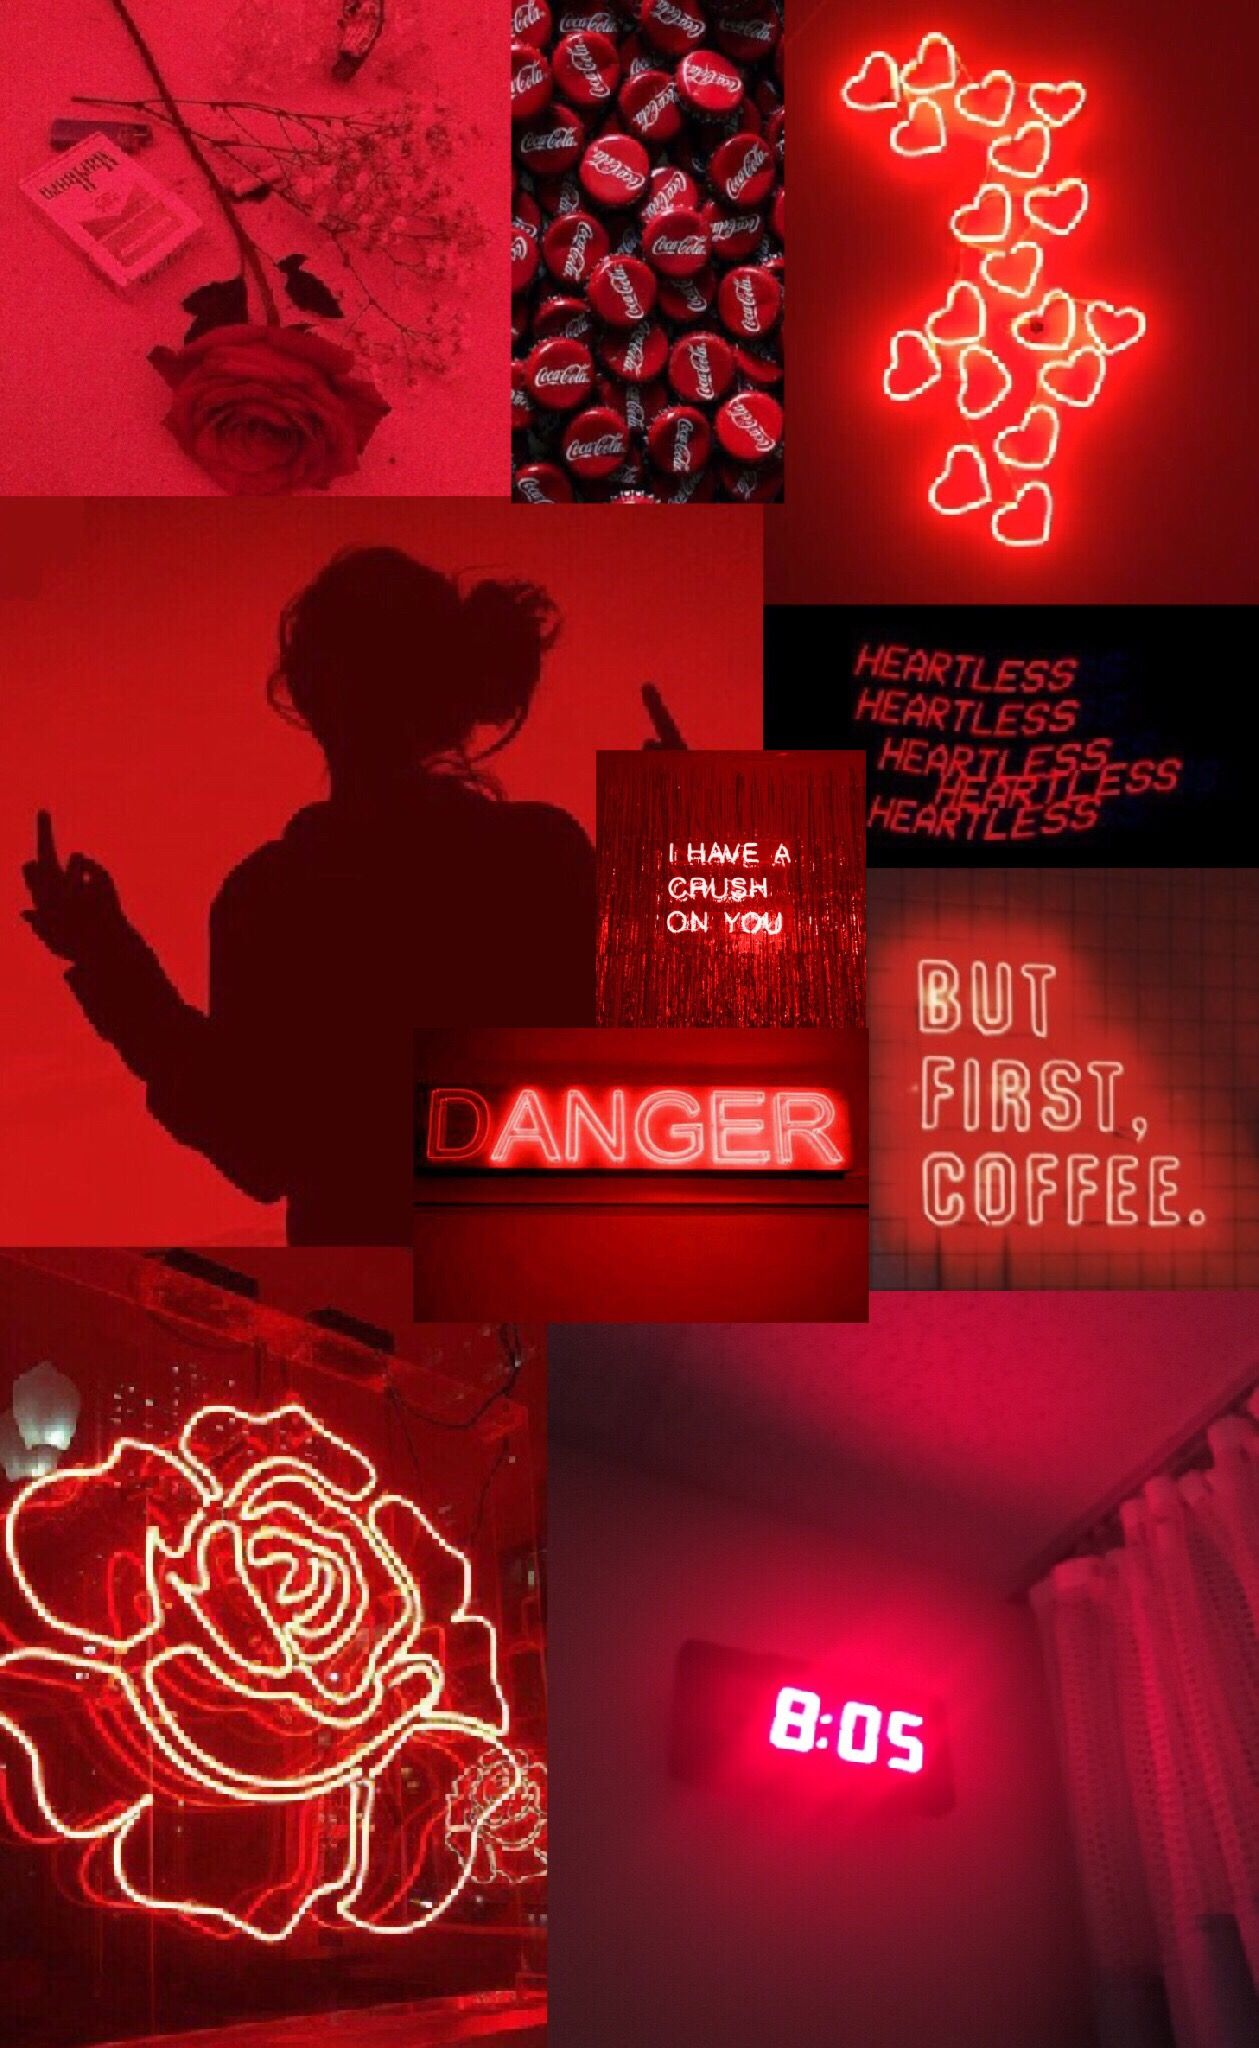 Freetoedit Tumblr Aesthetic Red Rojo Roses Rosas Collage Hearts Remixit Red And Black Wallpaper Dark Red Wallpaper Iphone Wallpaper Tumblr Aesthetic